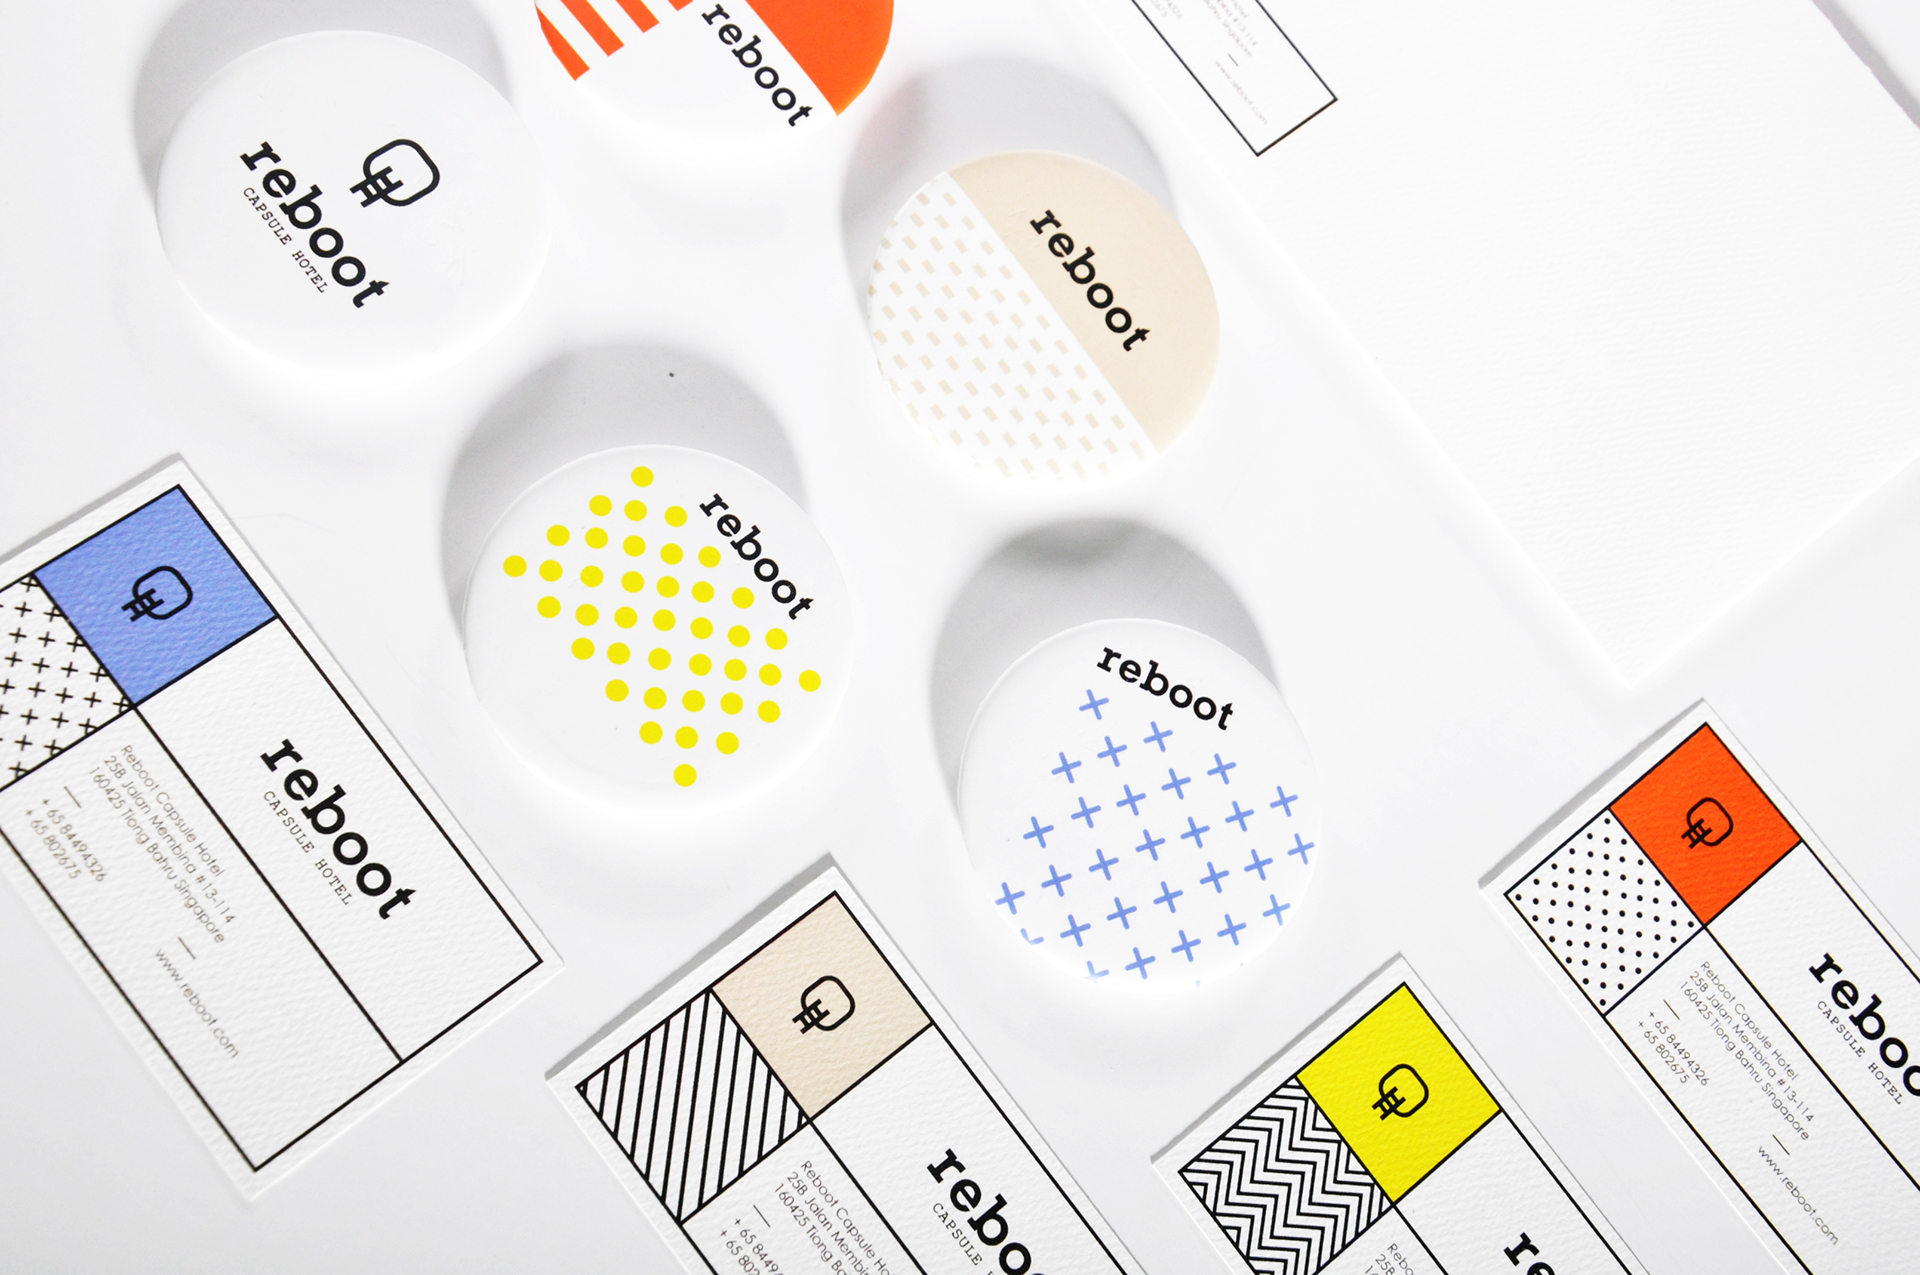 Reboot Capsule Hotel - Branding and Visual Identity